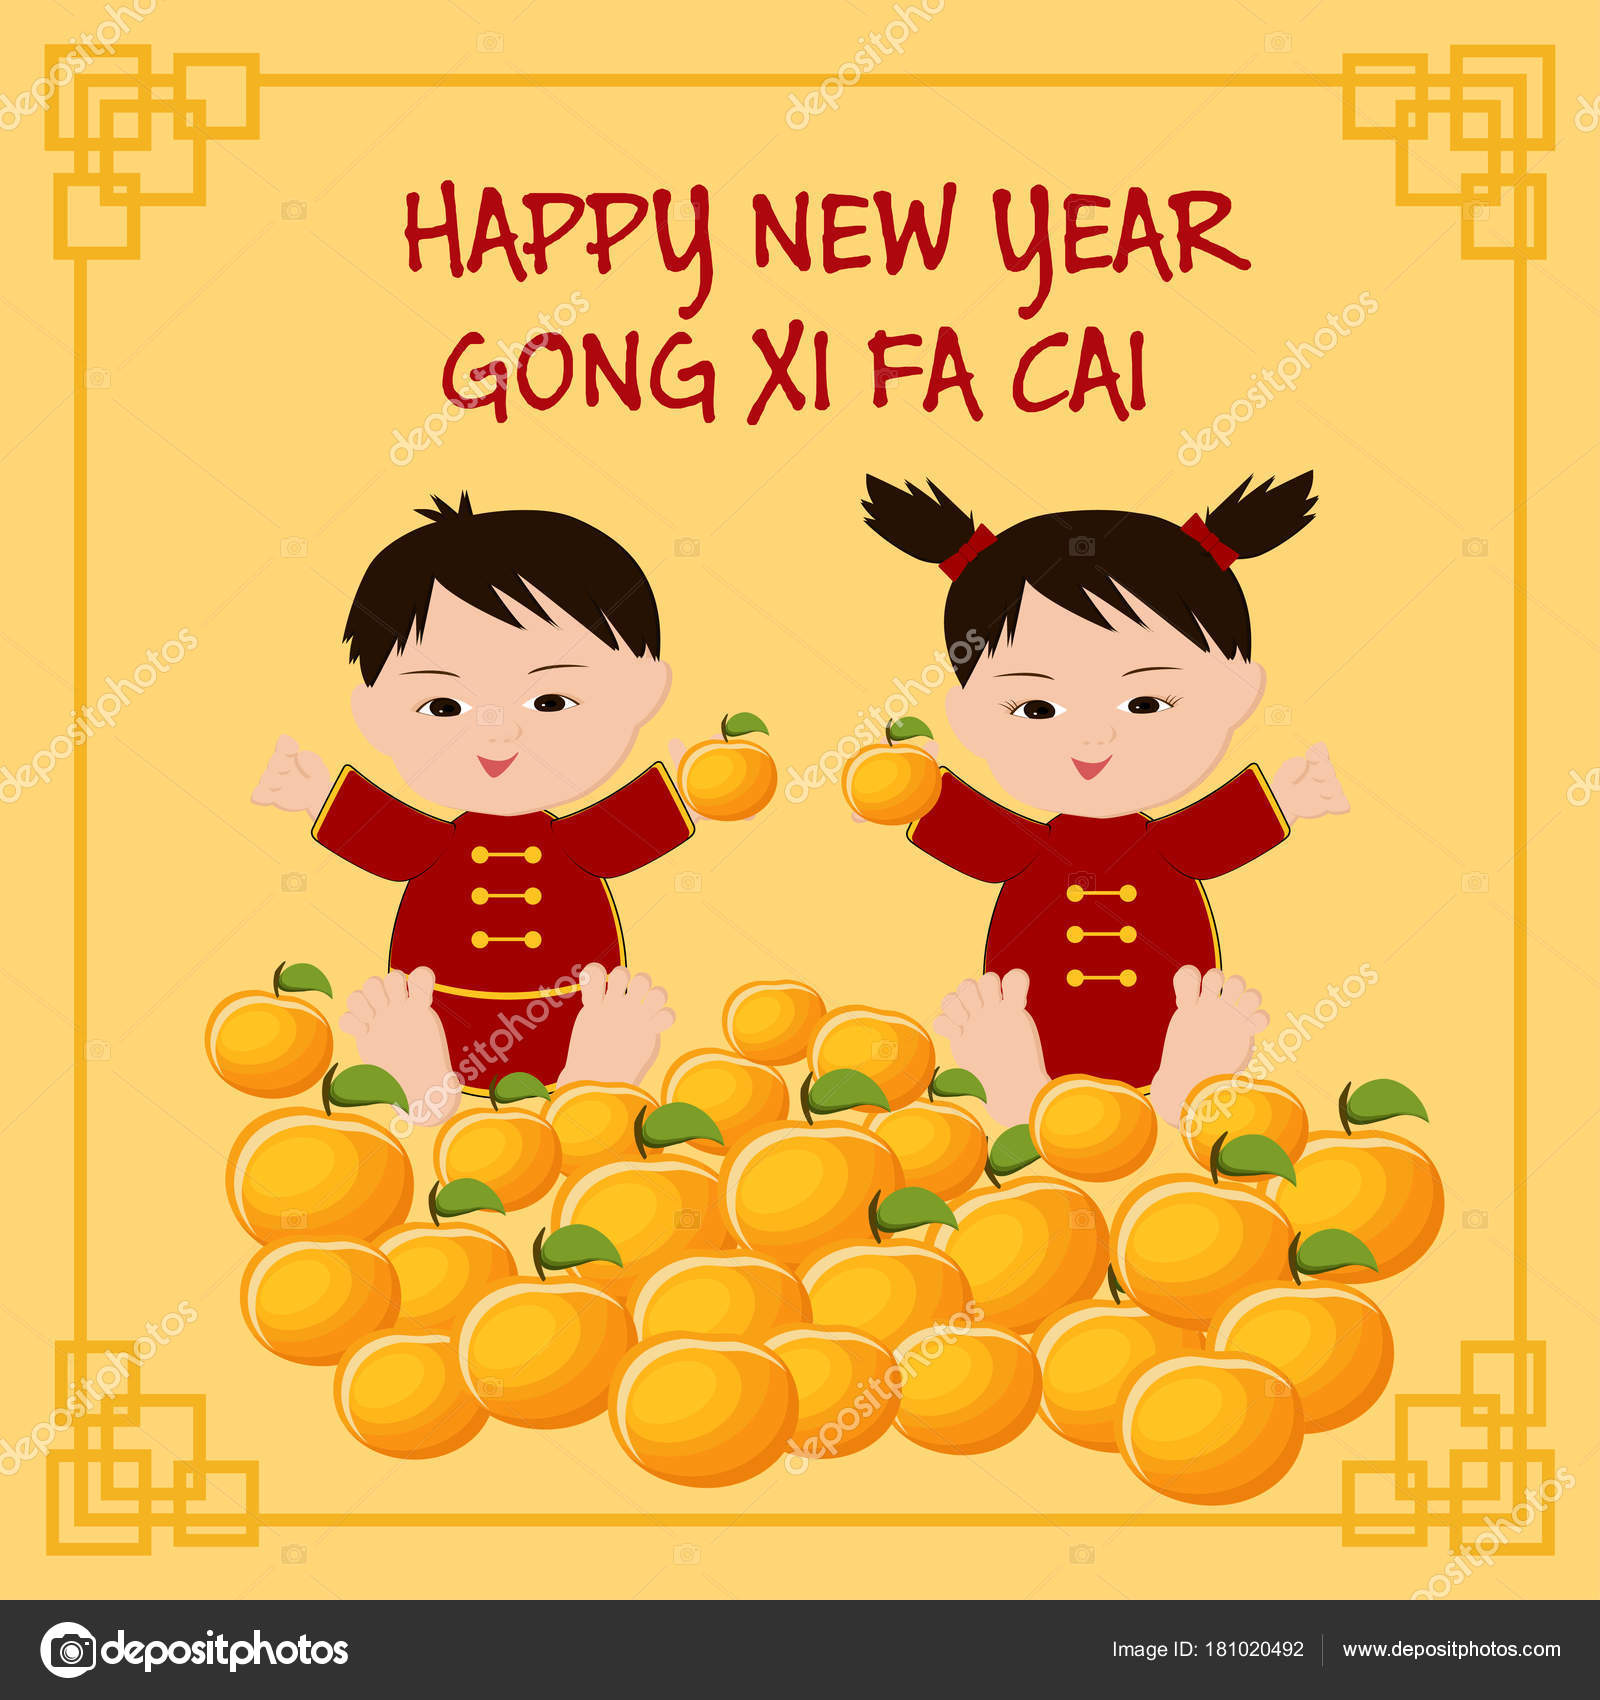 Chinese new year greeting card with chinese kids text happy new year chinese new year greeting card with chinese kids in traditional clothing mandarins and text happy new year cong xi fa cai cartoon vector illustration in m4hsunfo